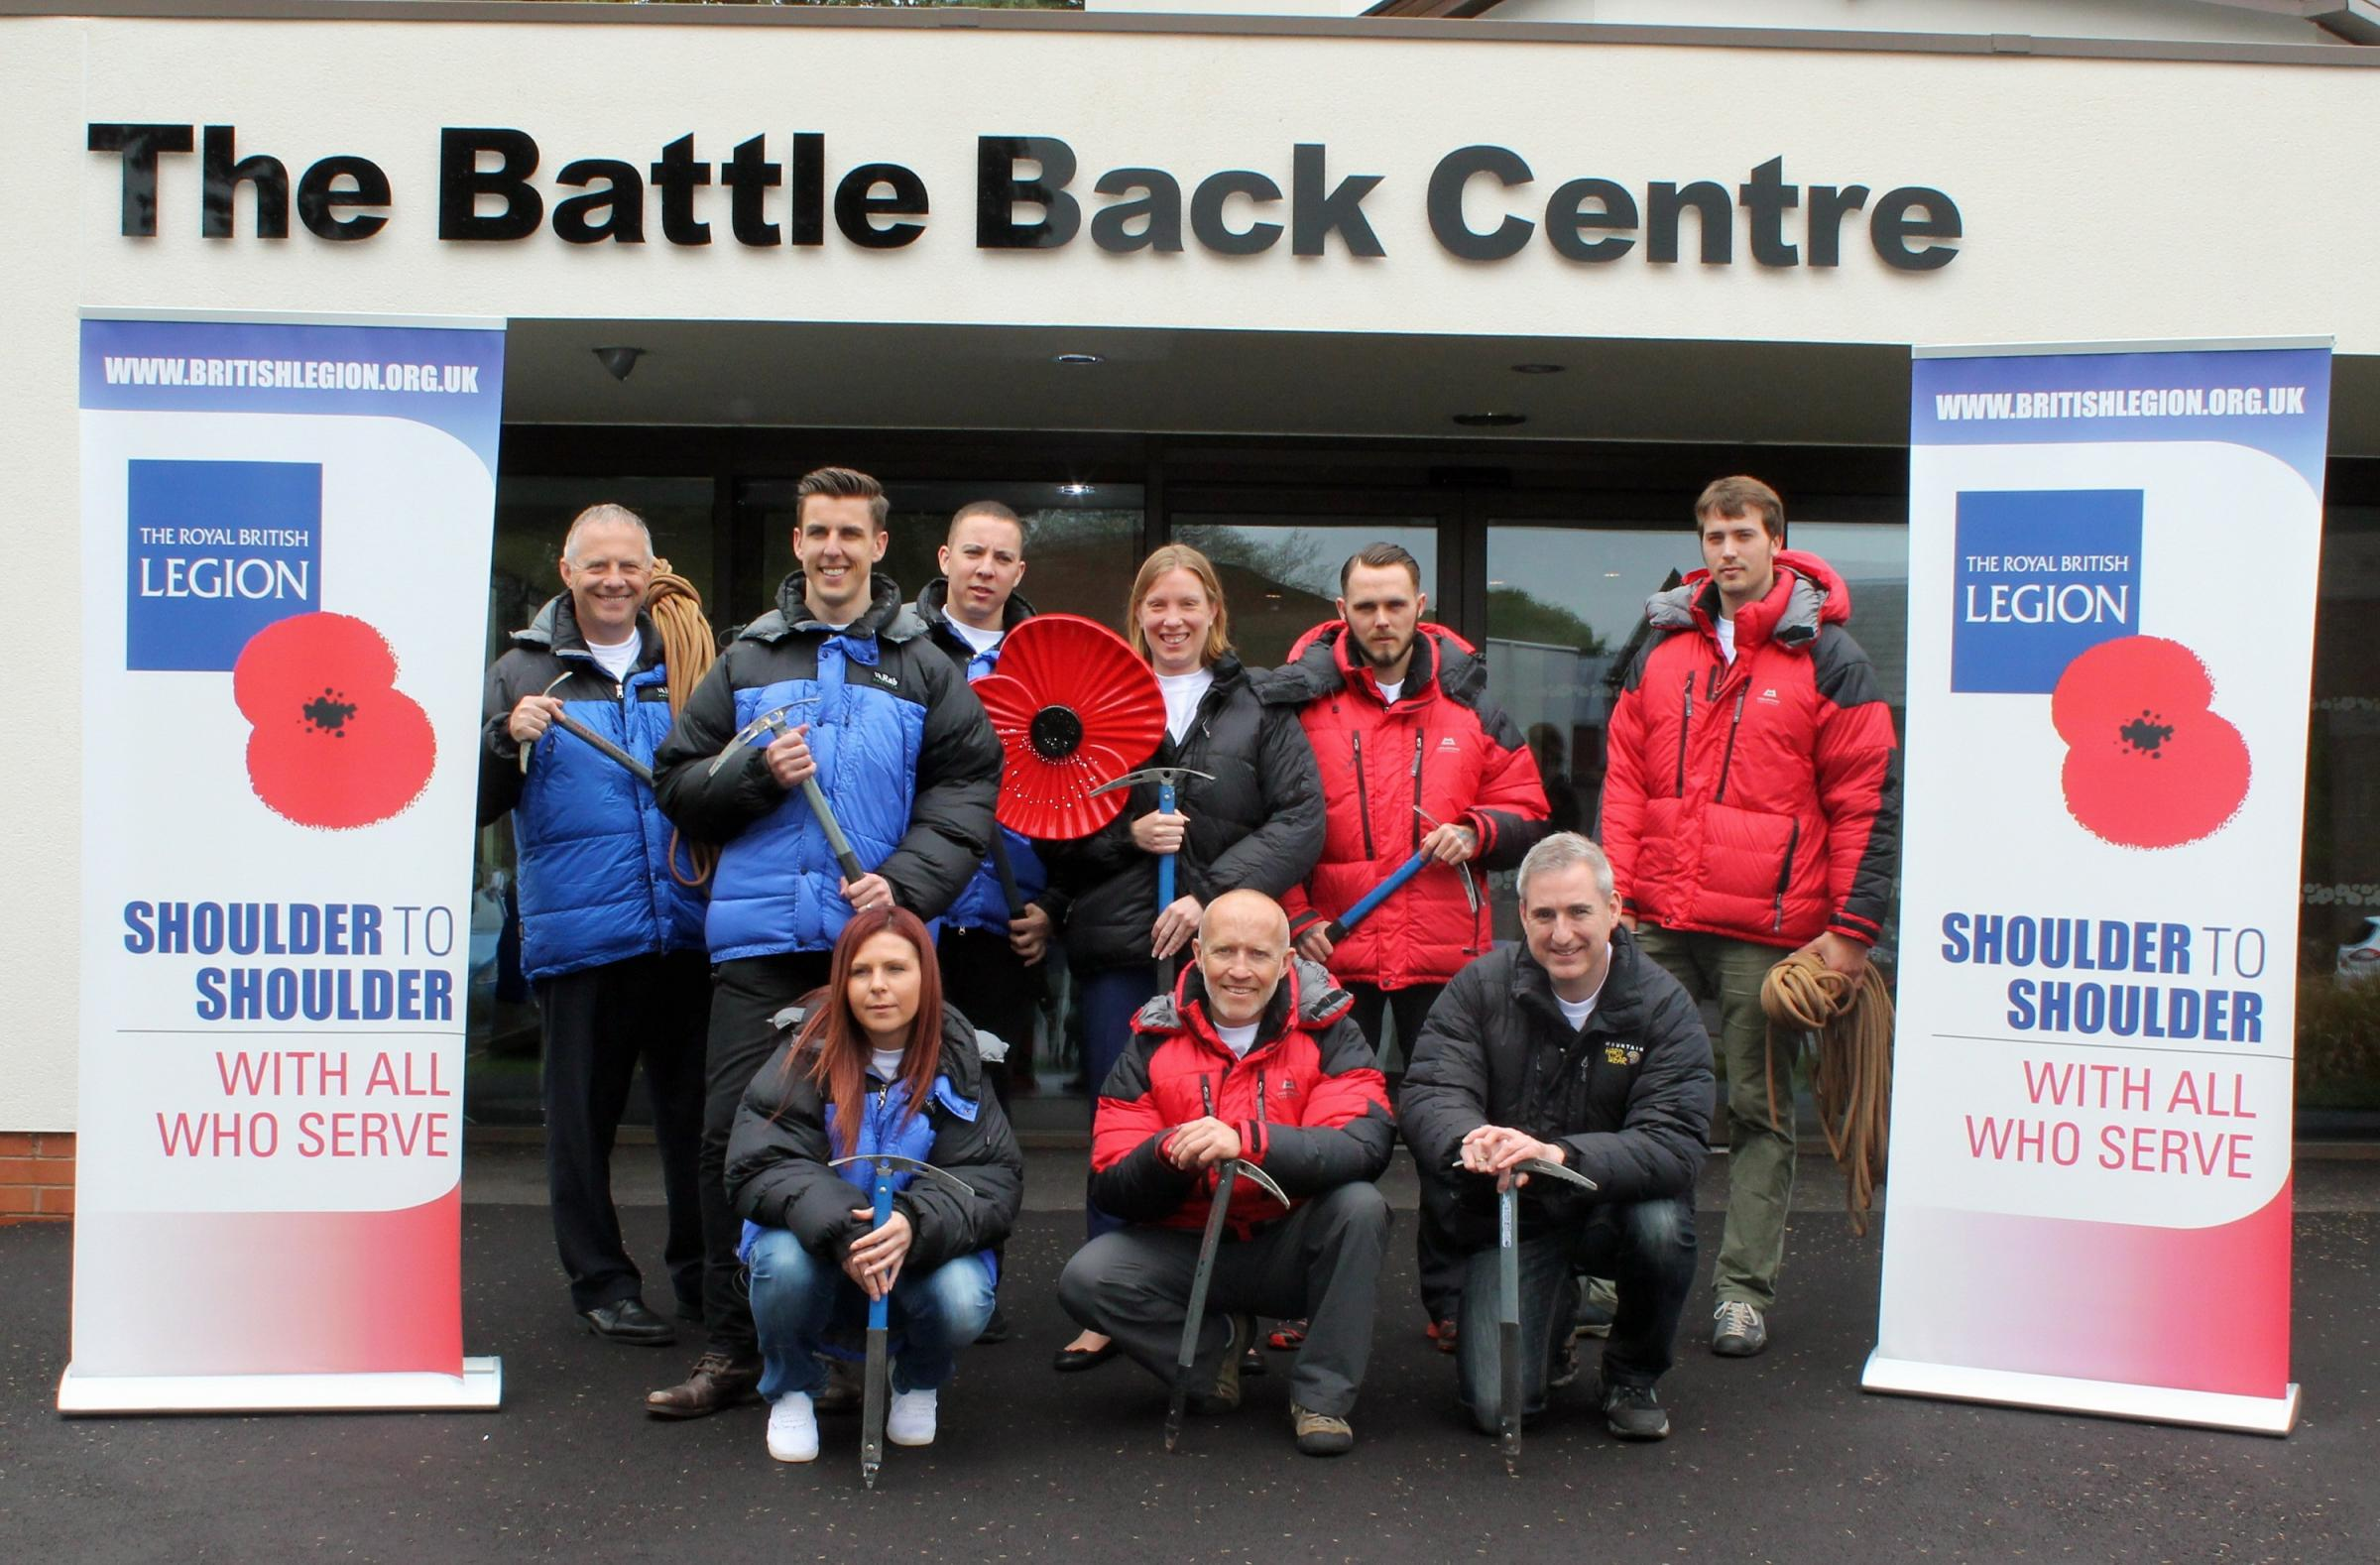 MP Greg Mulholland (far right, front row) is joining an expedition to scale one of the world's highest active volcanoes